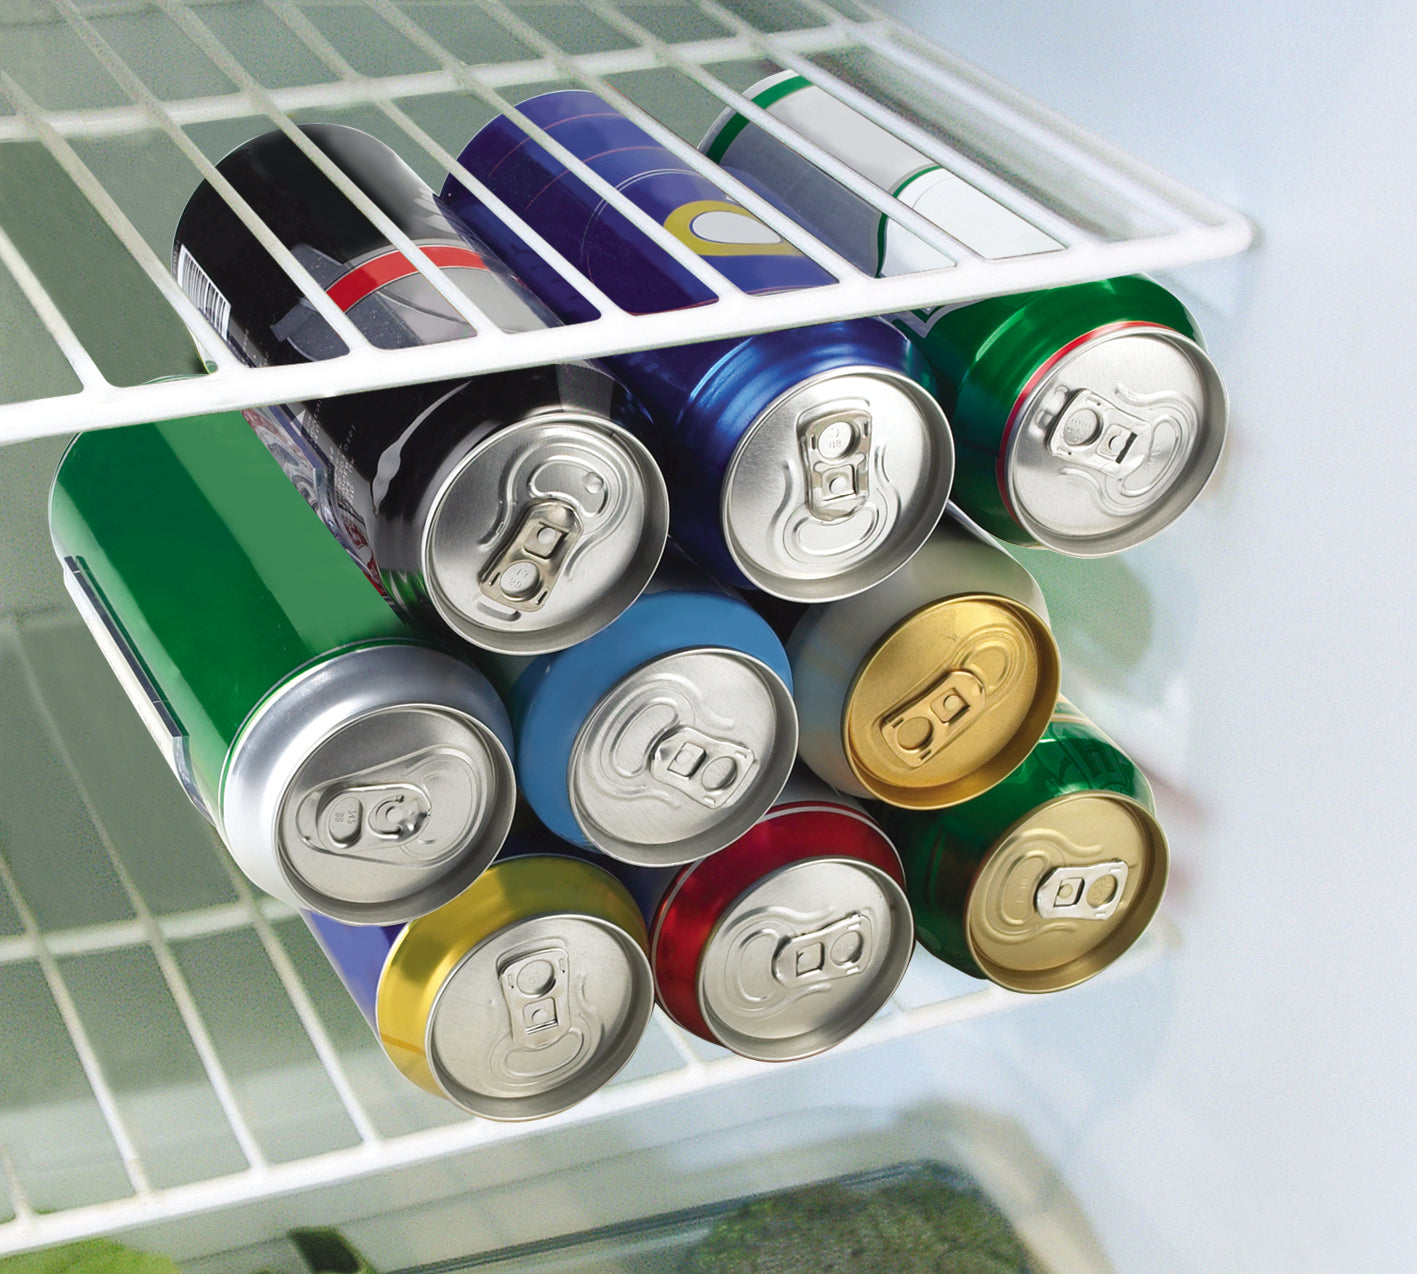 RakaStaka Cans - Space-Saving Beer and Soda Can Racks Ideal for in the Fridge (1 x Pack of 2) Supports 9+ Cans - As featured on Dragons' Den